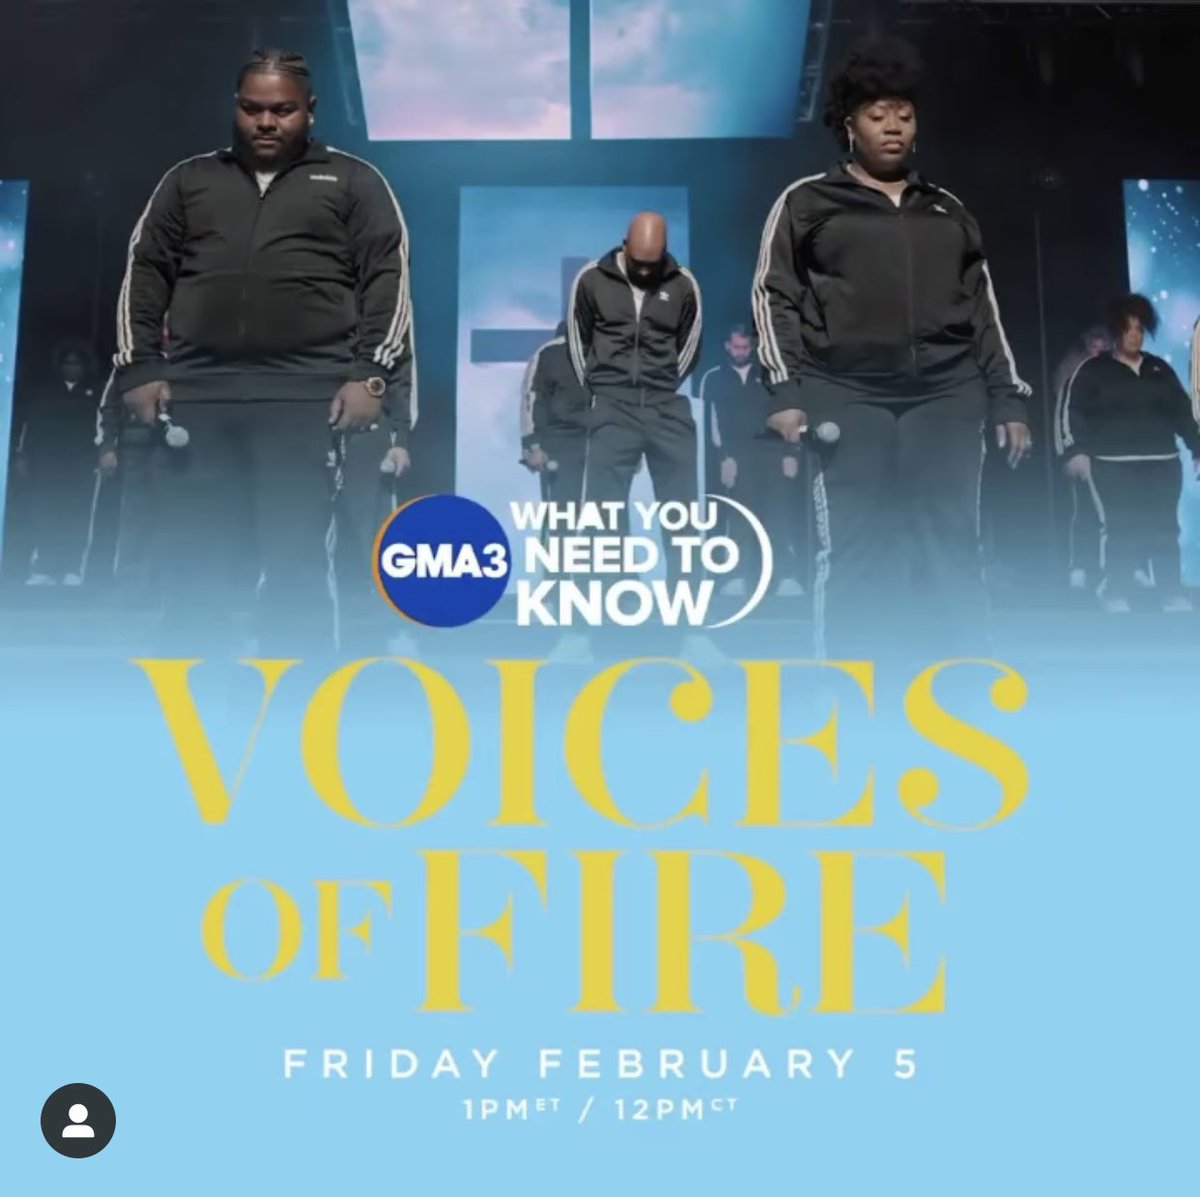 """Less  than an hour away from @voicesoffire single """"Hit The Refresh"""" dropping! Download your copy & help us celebrate by watching us on @abcgma3 TOMORROW! Tune in! 1PM EST/ 12PM CST 🔥  #HitTheRefresh🔄 #voicesoffire"""